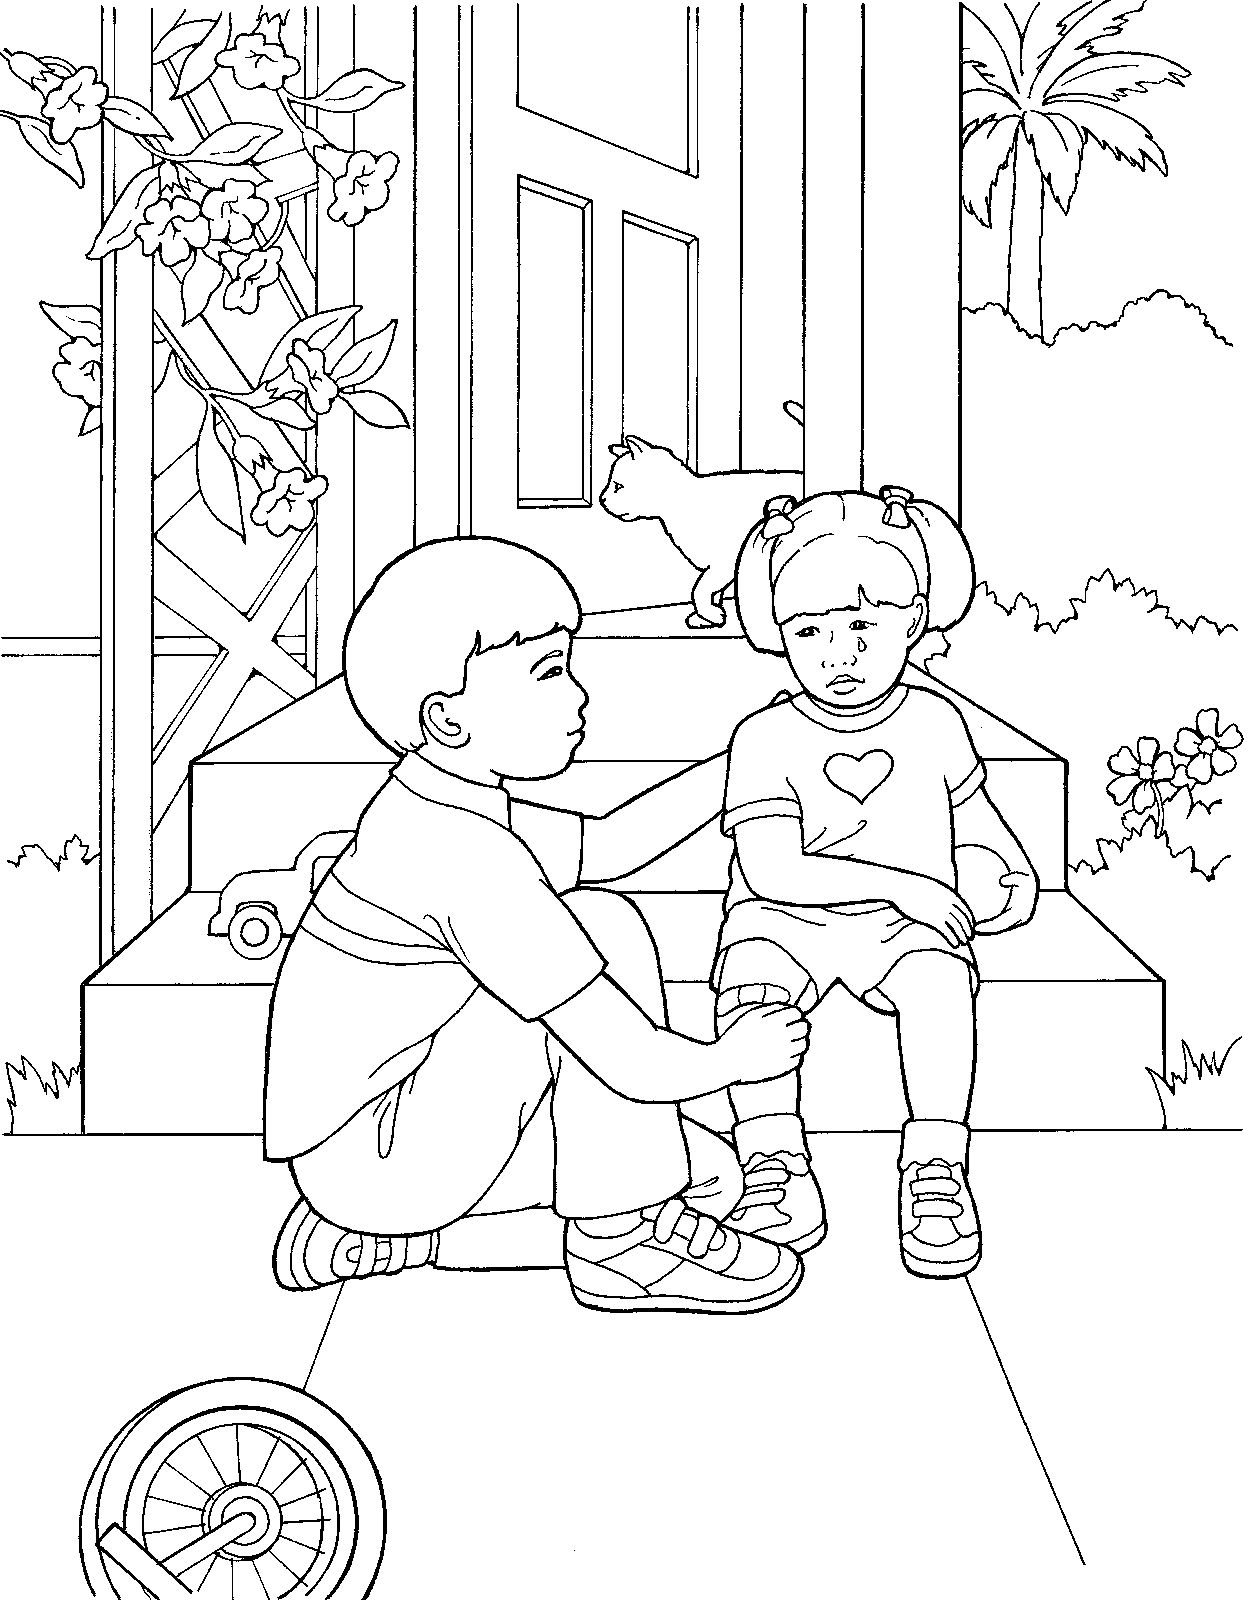 Primary coloring page from lds.org. A little boy comforts